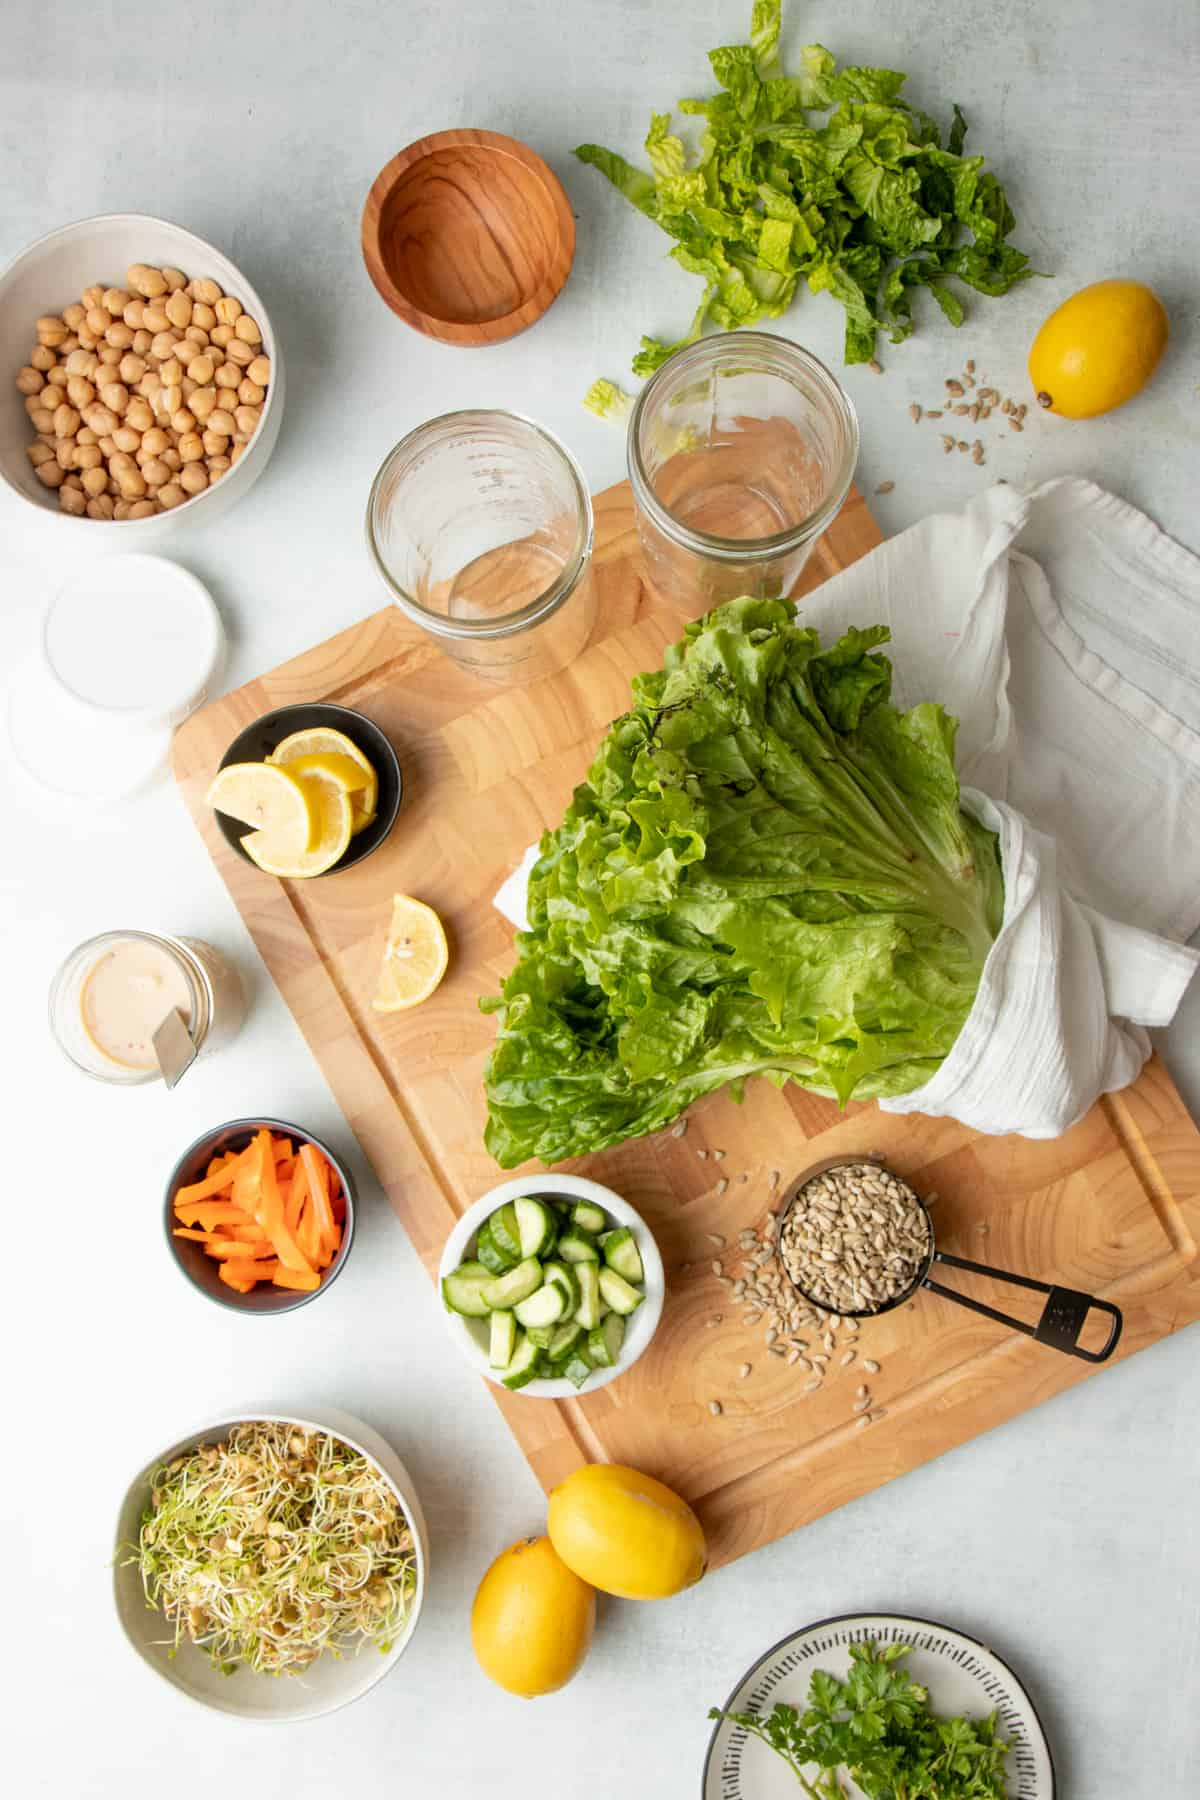 Two empty glass jars, lettuce, and sliced lemons sit on a wooden cutting board. Around the board, chickpeas, sprouts, and other ingredients sit on a white countertop.